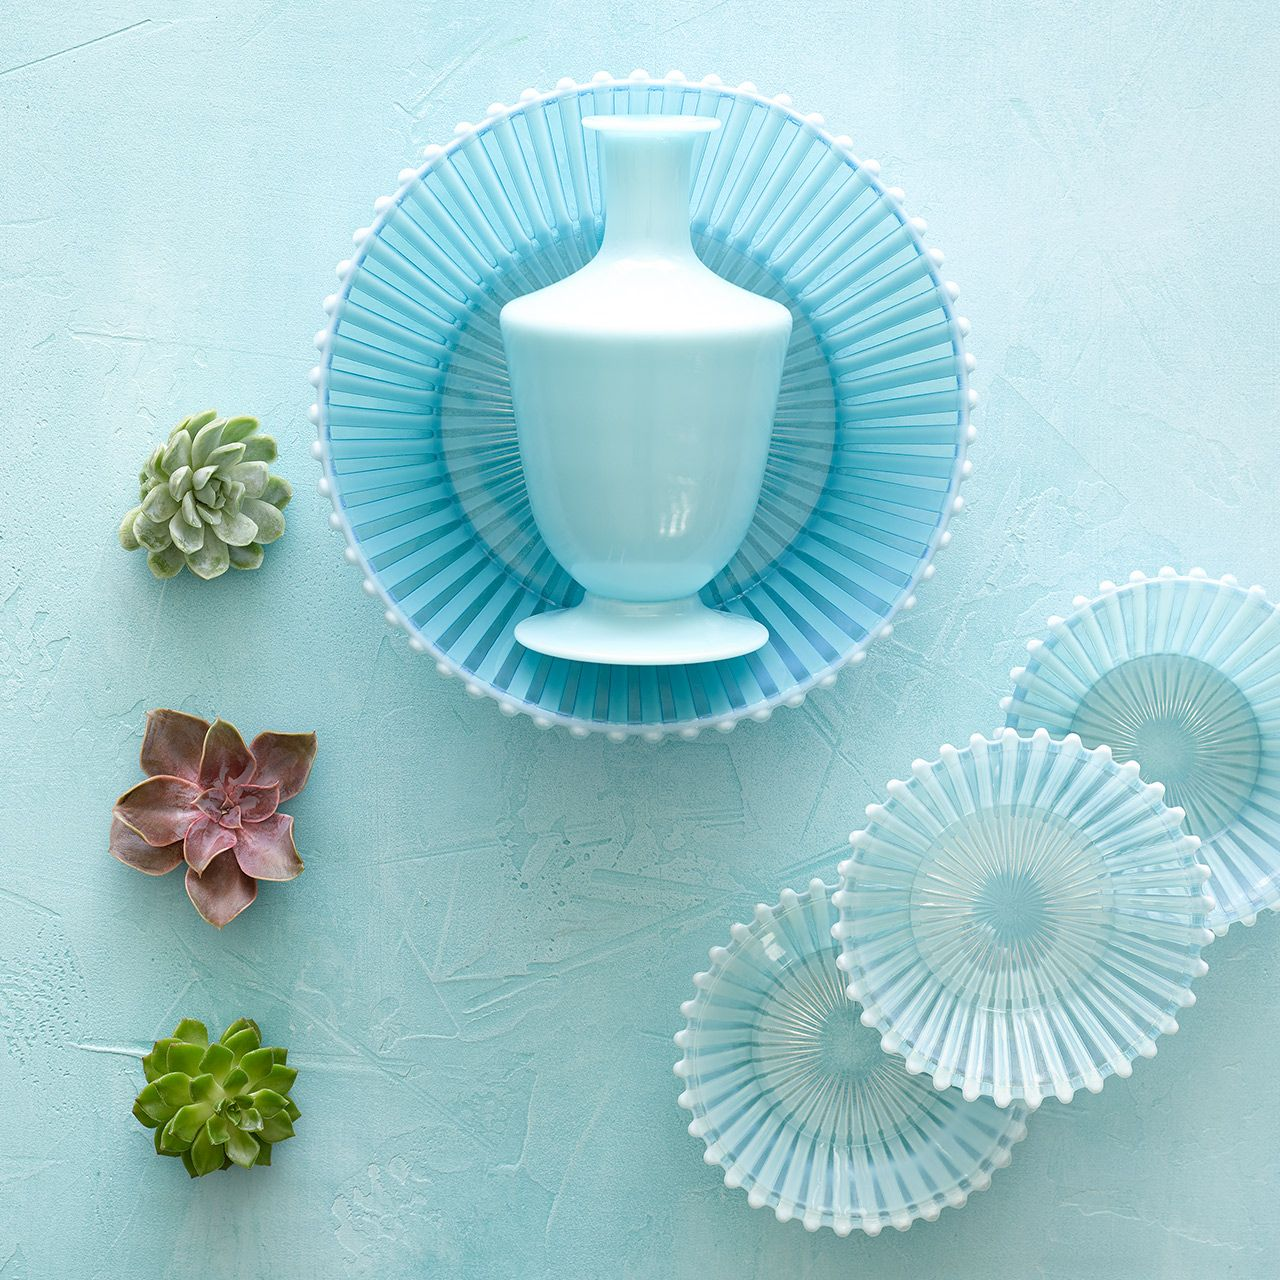 Vintage Blue Glass with Air Succulents